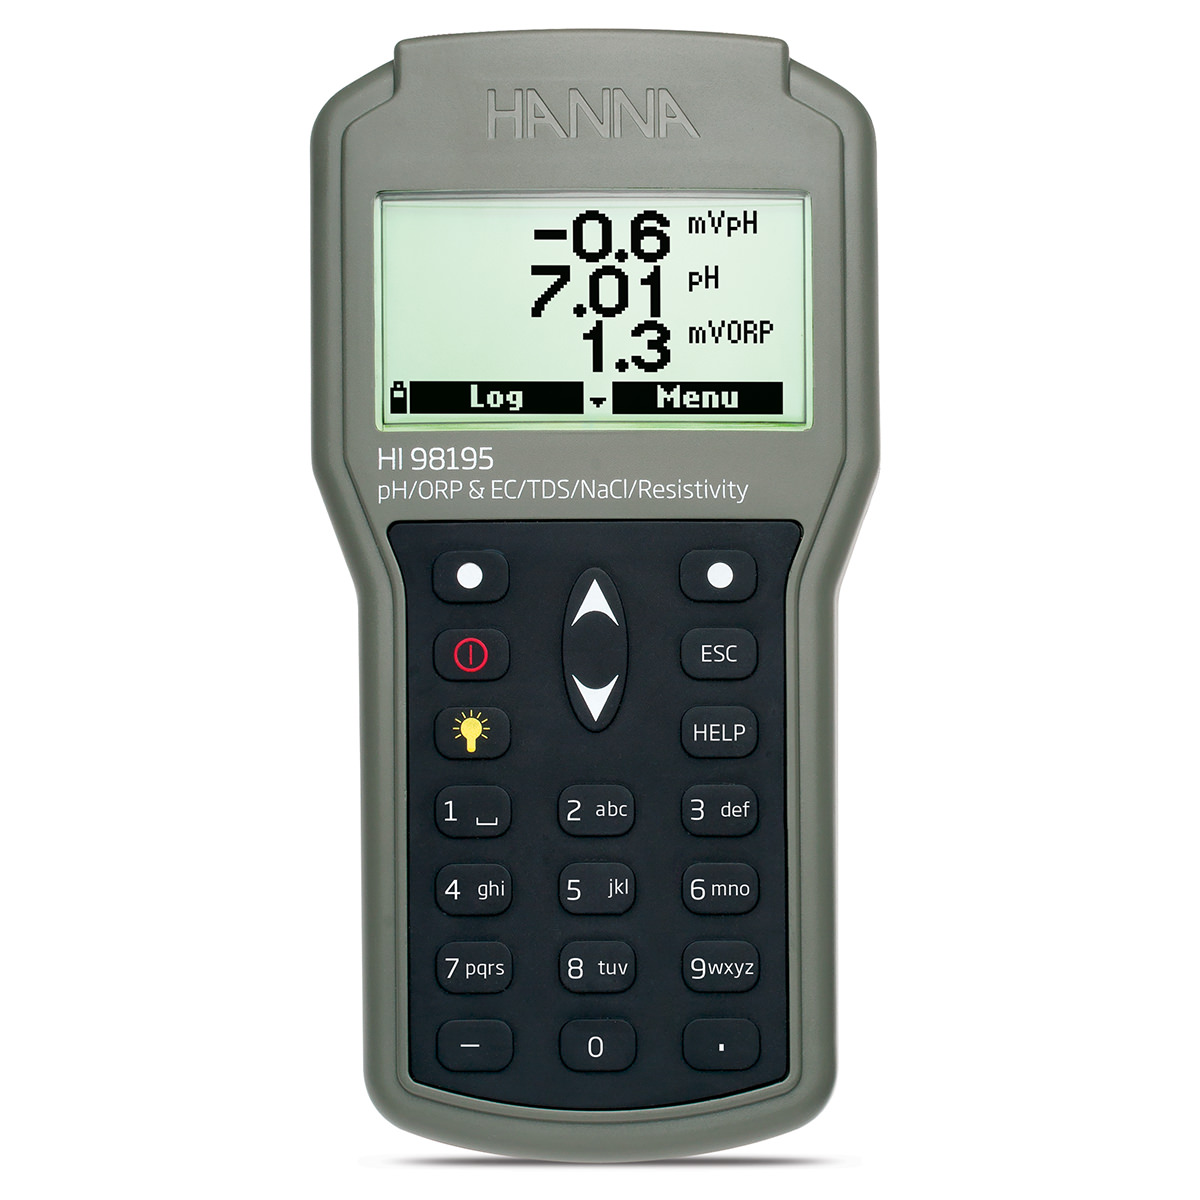 Multiparameter pH/ORP/EC/Pressure/Temperature Waterproof Meter - HI98195